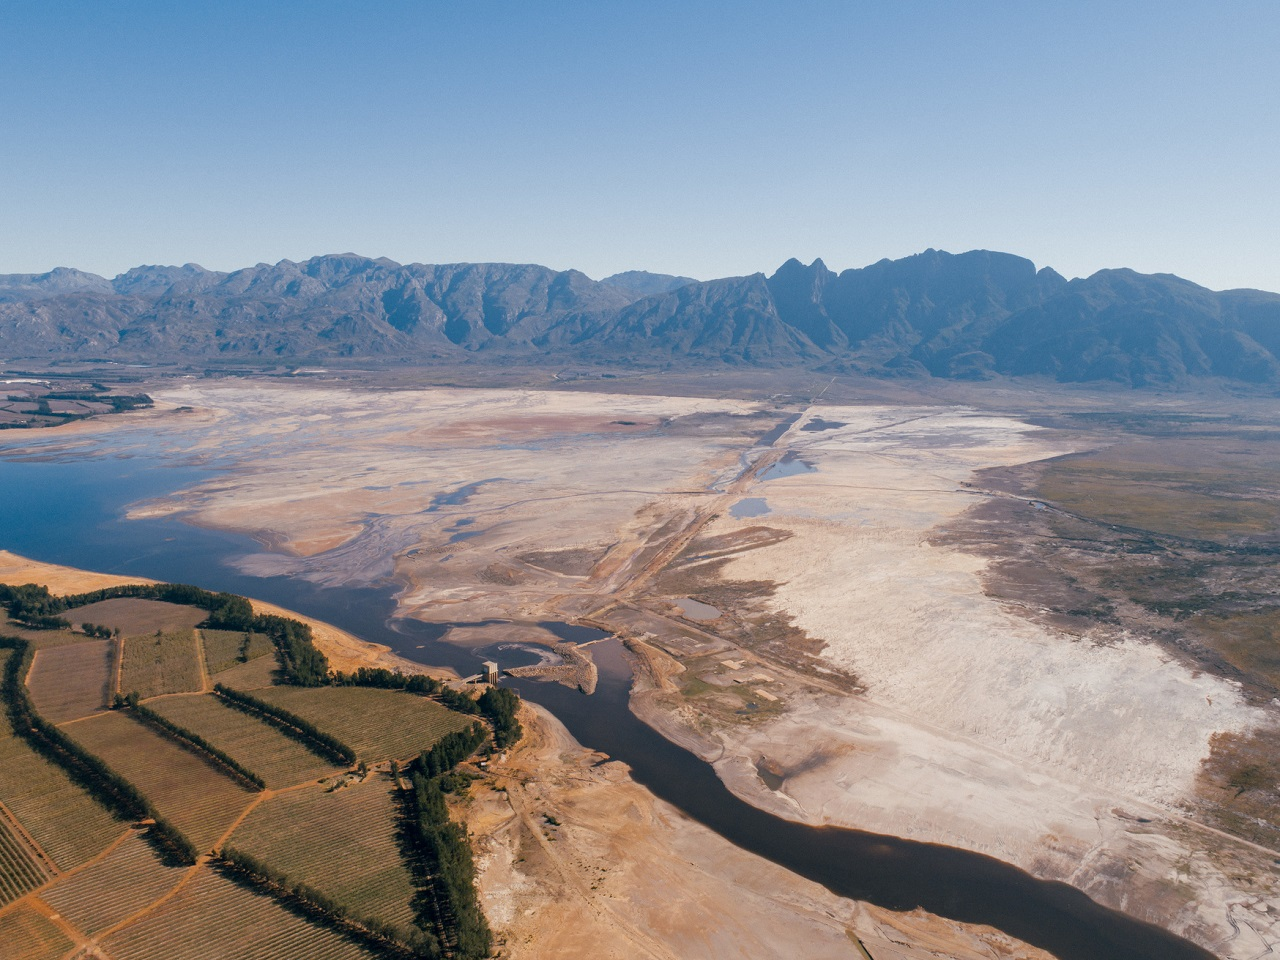 2018 drought - Theewaterskloof Dam, Cape Town, South Africa